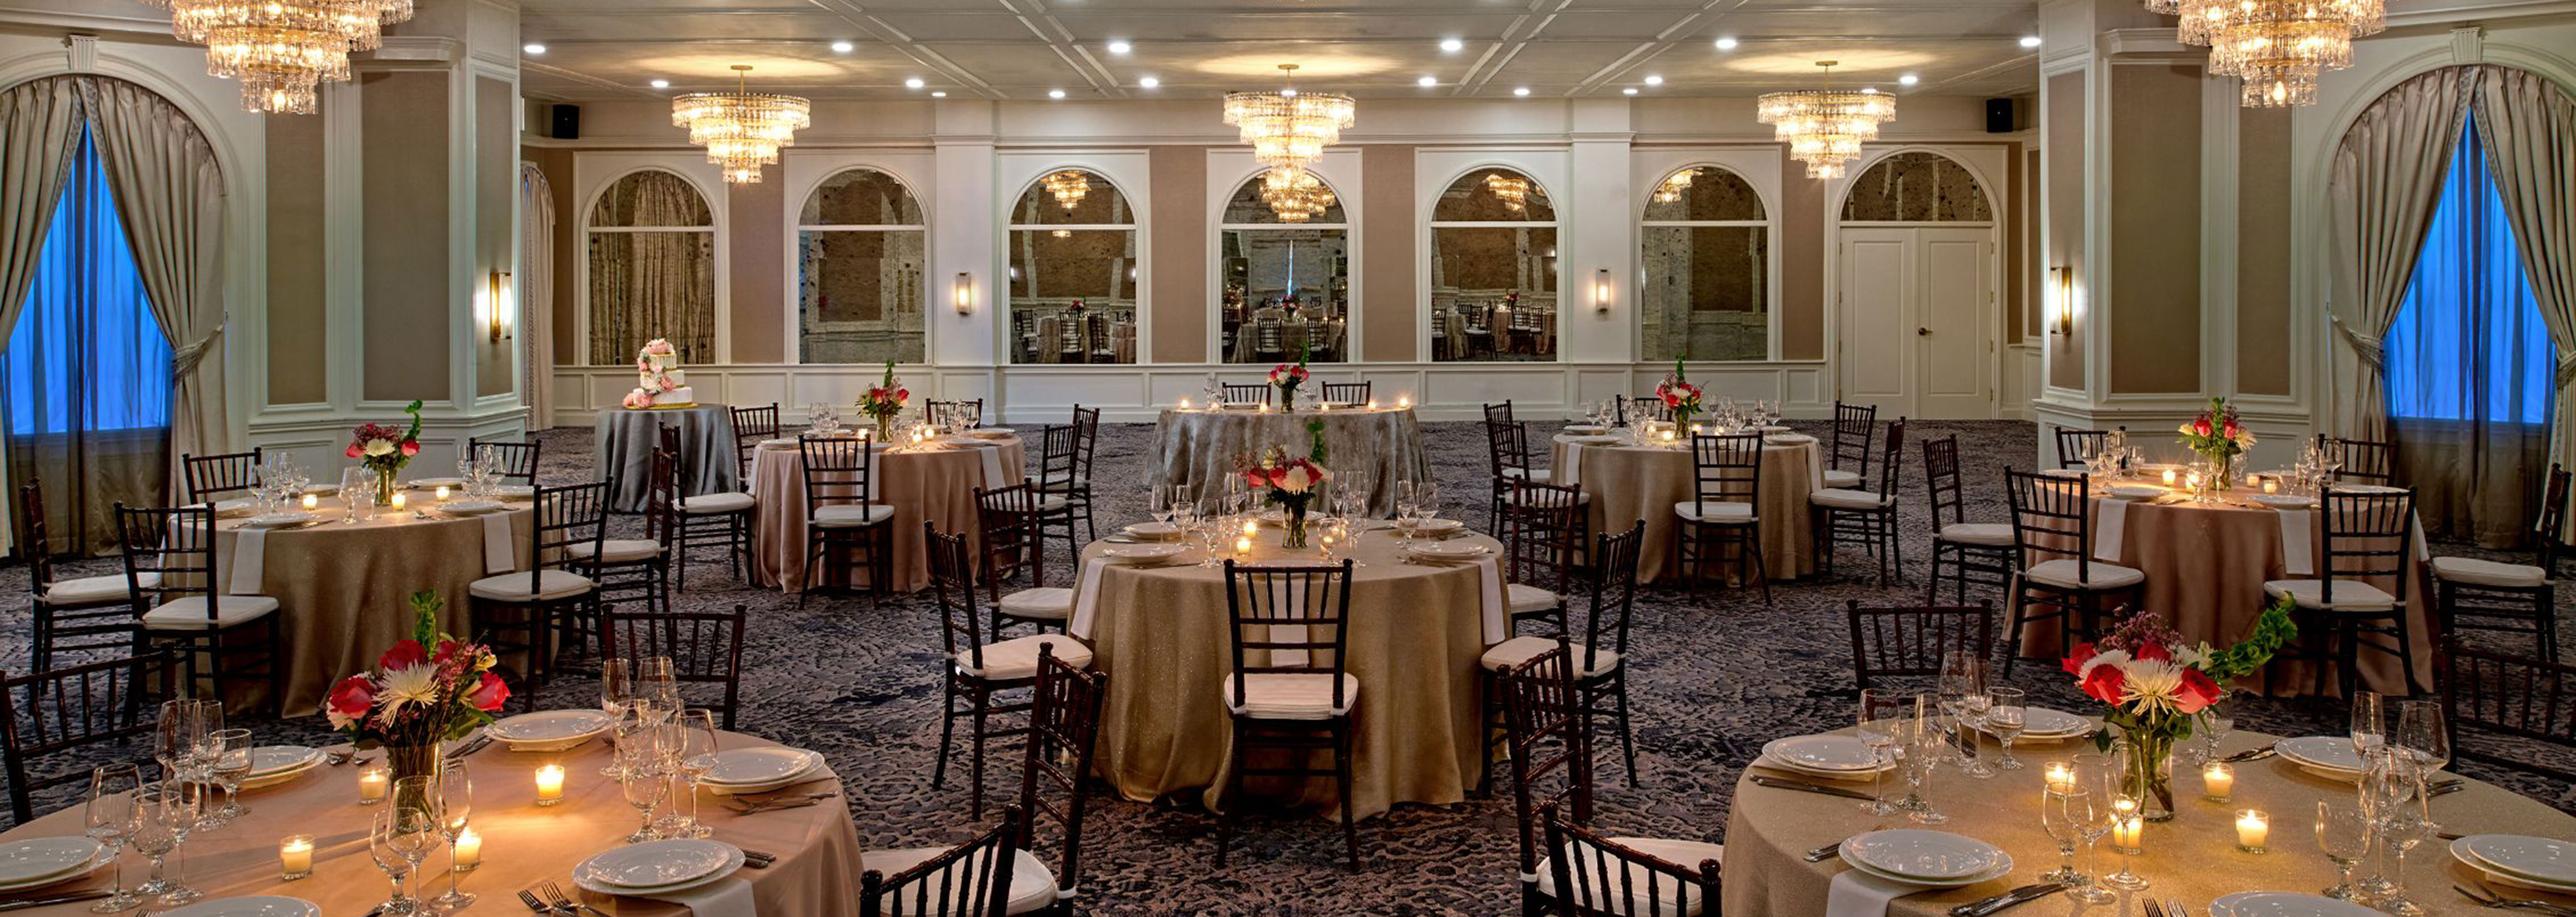 Image of Meeting Space The Hotel Viking, 1926, Member of Historic Hotels of America, in Newport, Rhode Island, Special Occasions